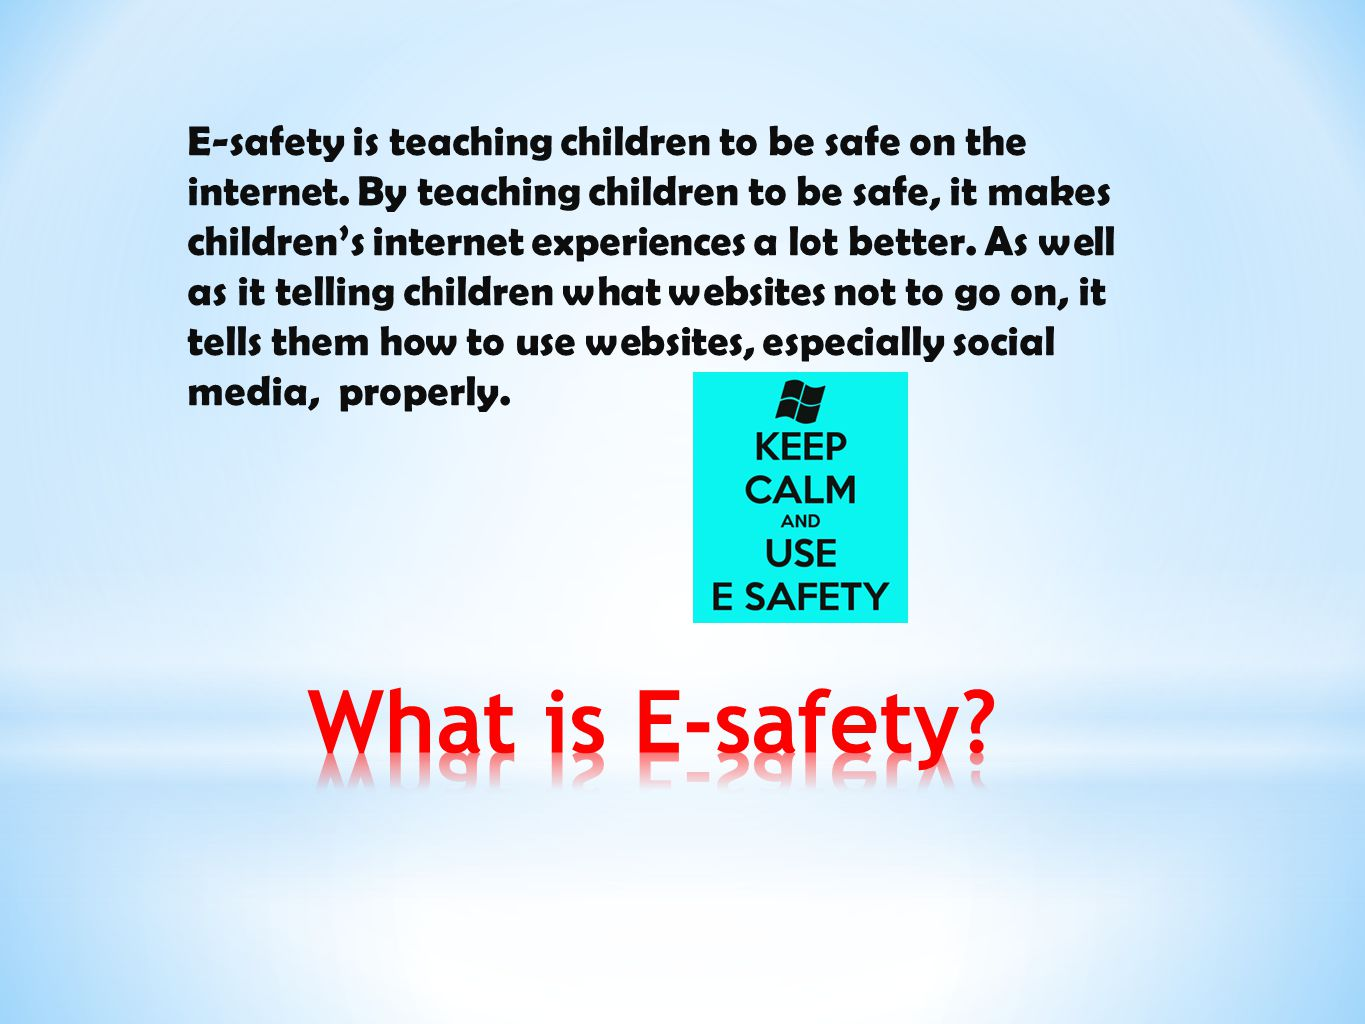 E-safety is teaching children to be safe on the internet